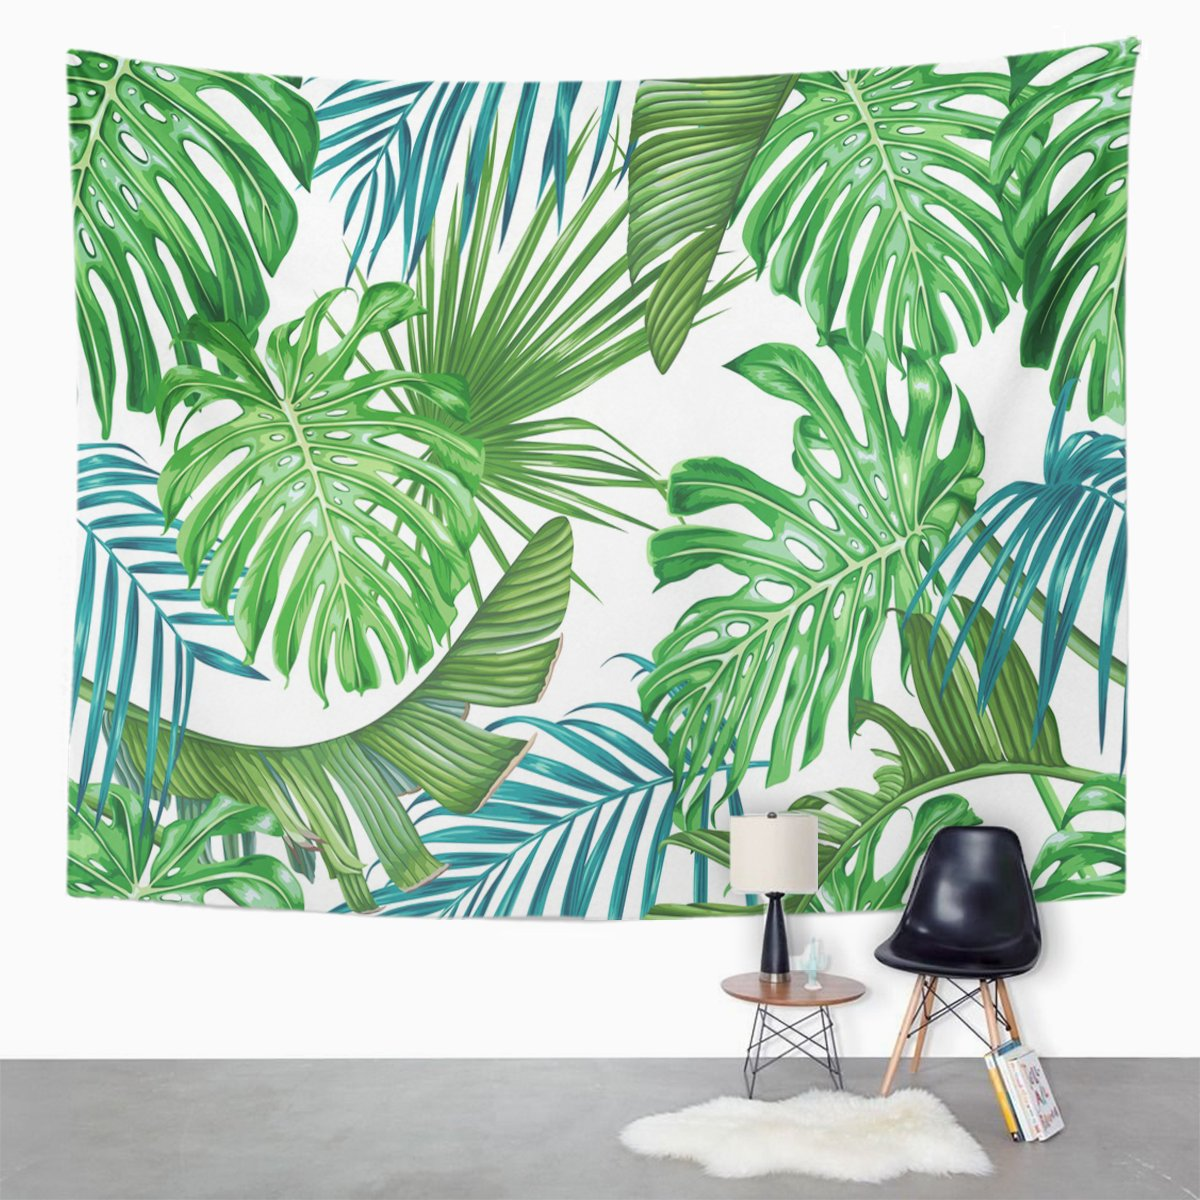 Ufaezu Green Tropic Tropical Leaves Palm And Monstera Pattern Leaf Wall Art Hanging Tapestry Home Decor For Living Room Bedroom Dorm 60x80 Inch Walmart Com Walmart Com Explore trending designs from independent artists. walmart